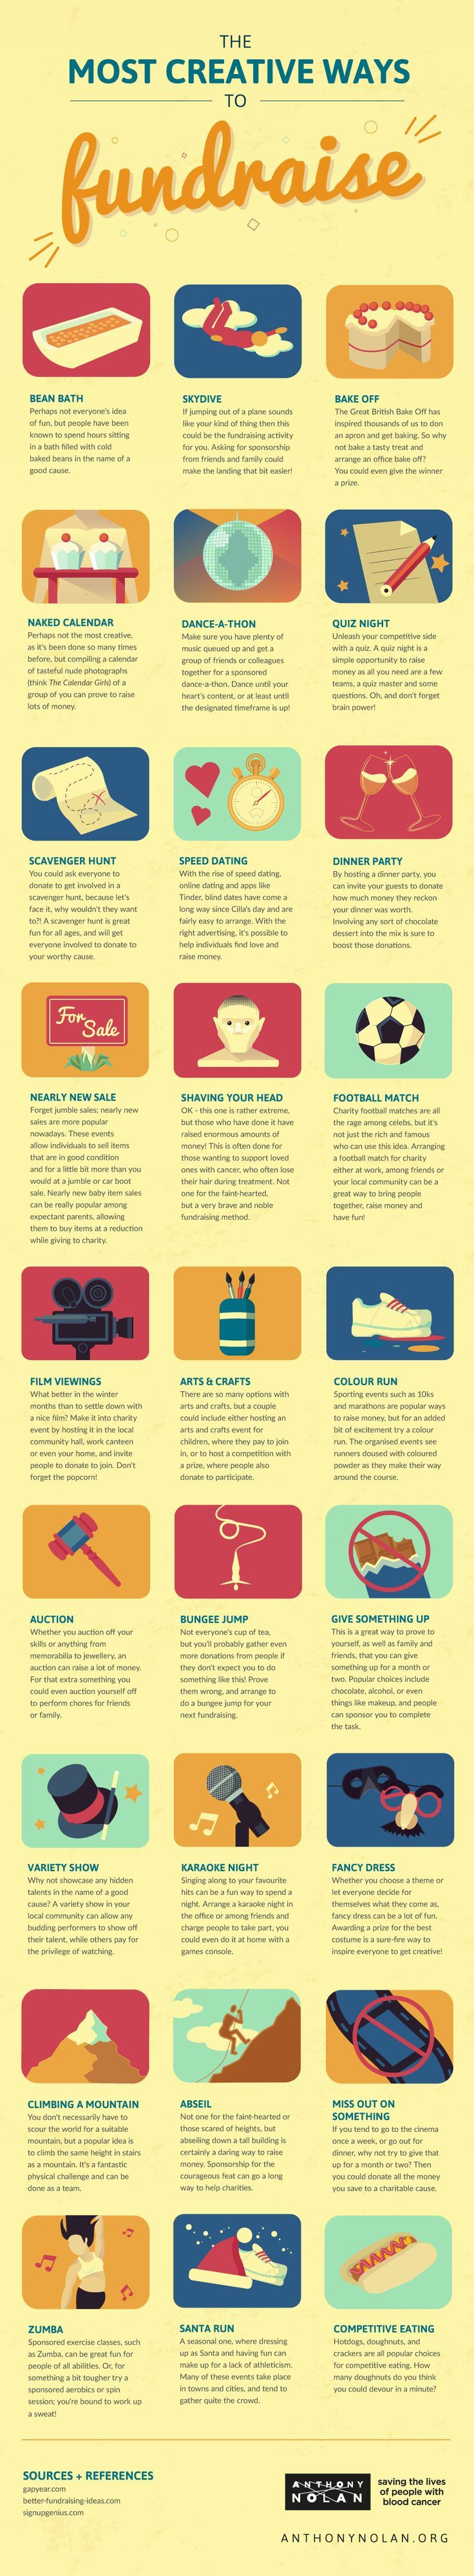 The Most Creative Ways to Fundraise #infographic